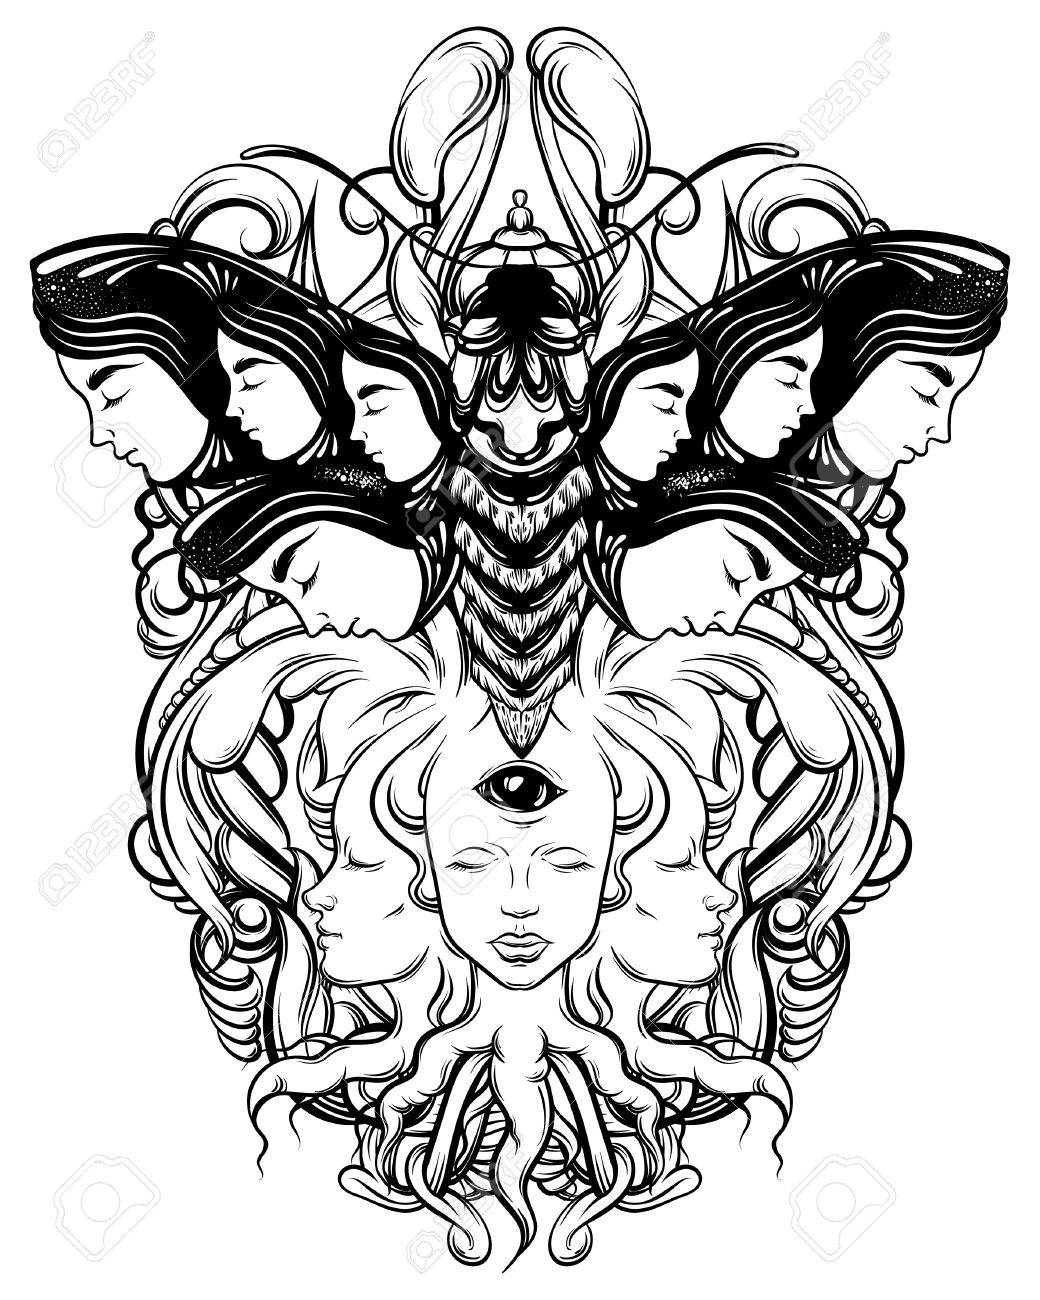 1040x1300 Vector Hand Drawn Illustration Of Fortune Teller With Three Eyes